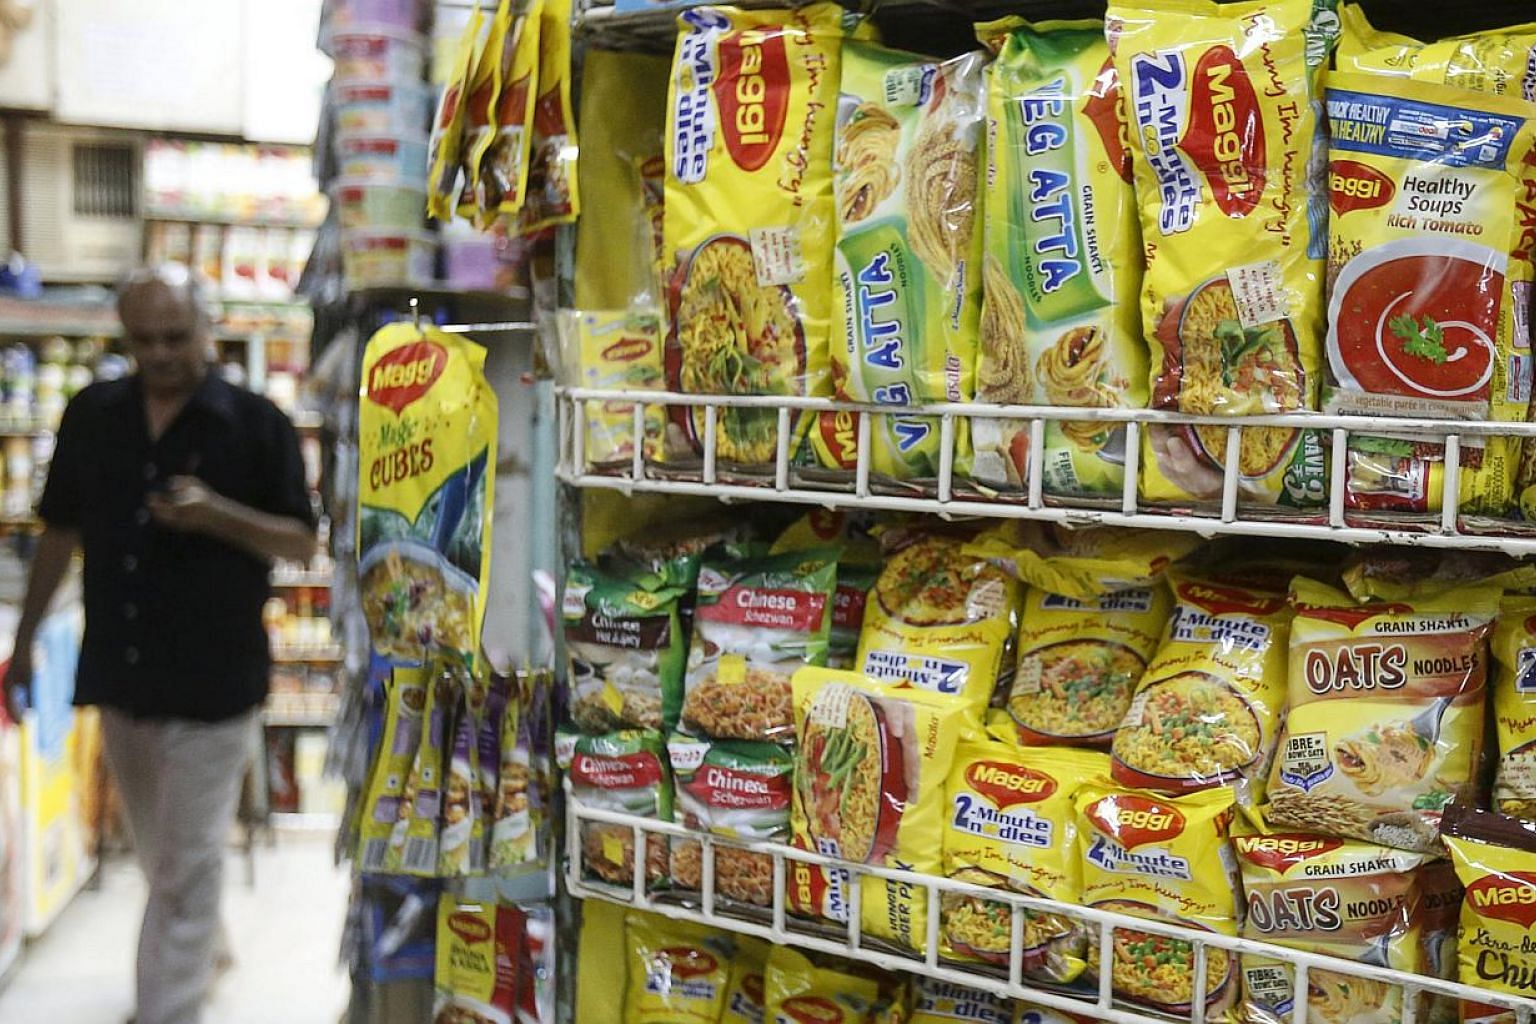 Packets of Nestle's Maggi instant noodles are seen on display at a grocery store in Mumbai, India, on June 4, 2015. -- PHOTO: REUTERS